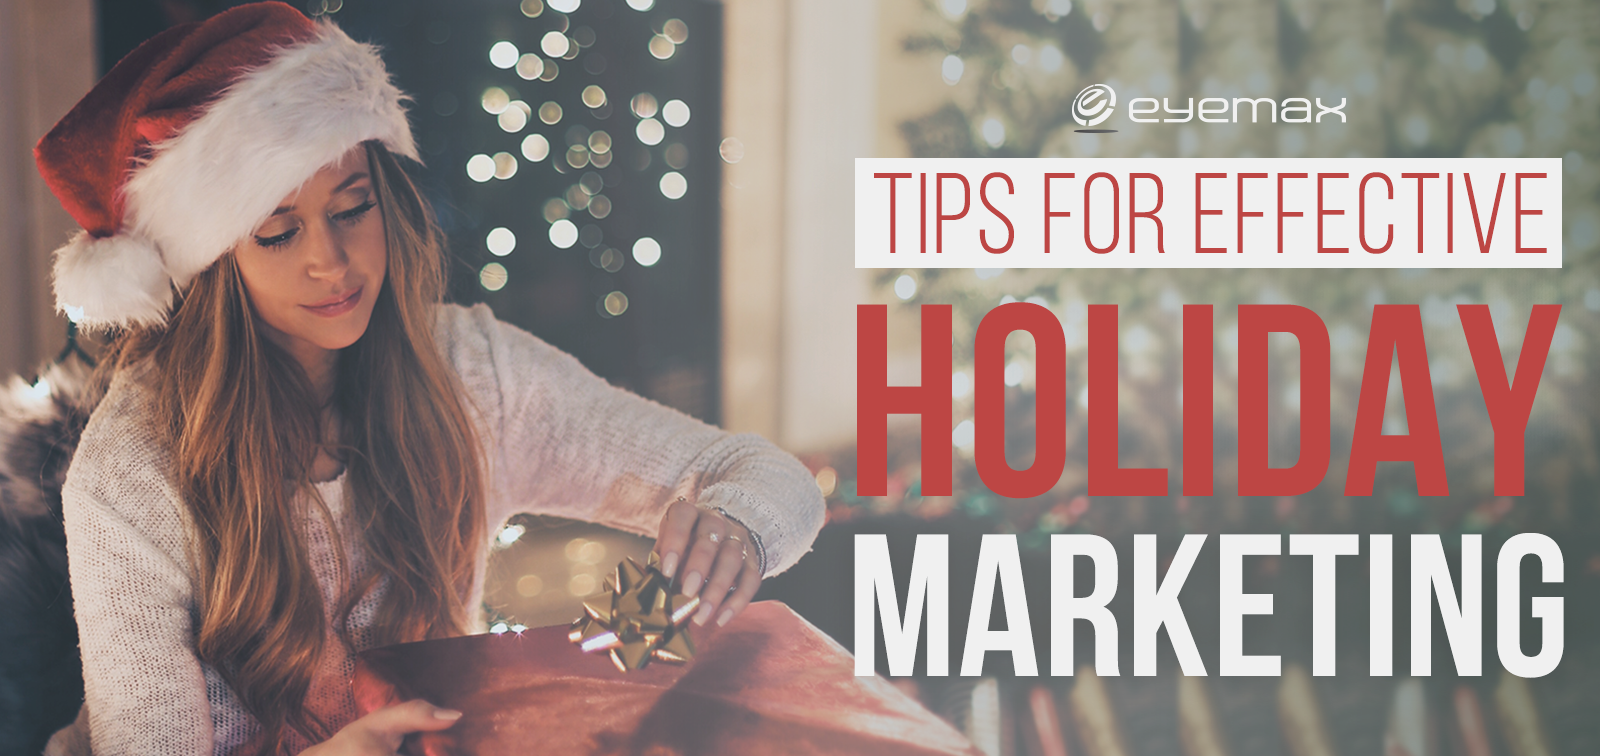 Tips for Effective Holiday Marketing